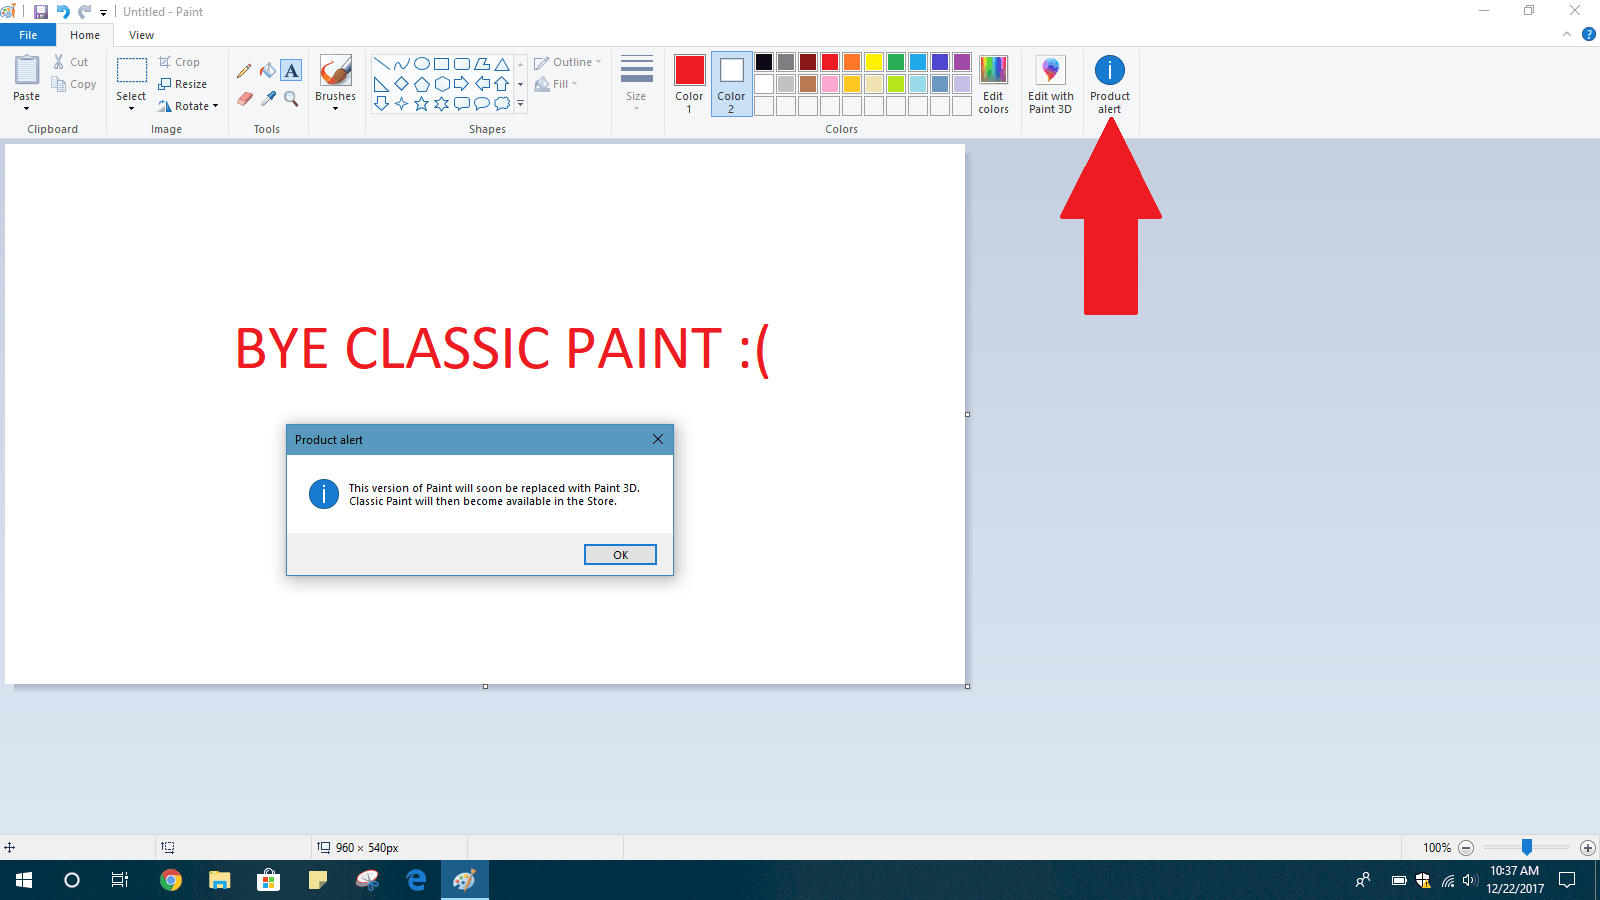 Microsoft confirms it won't remove MS Paint from Windows 10 for now OnMSFT.com April 23, 2019